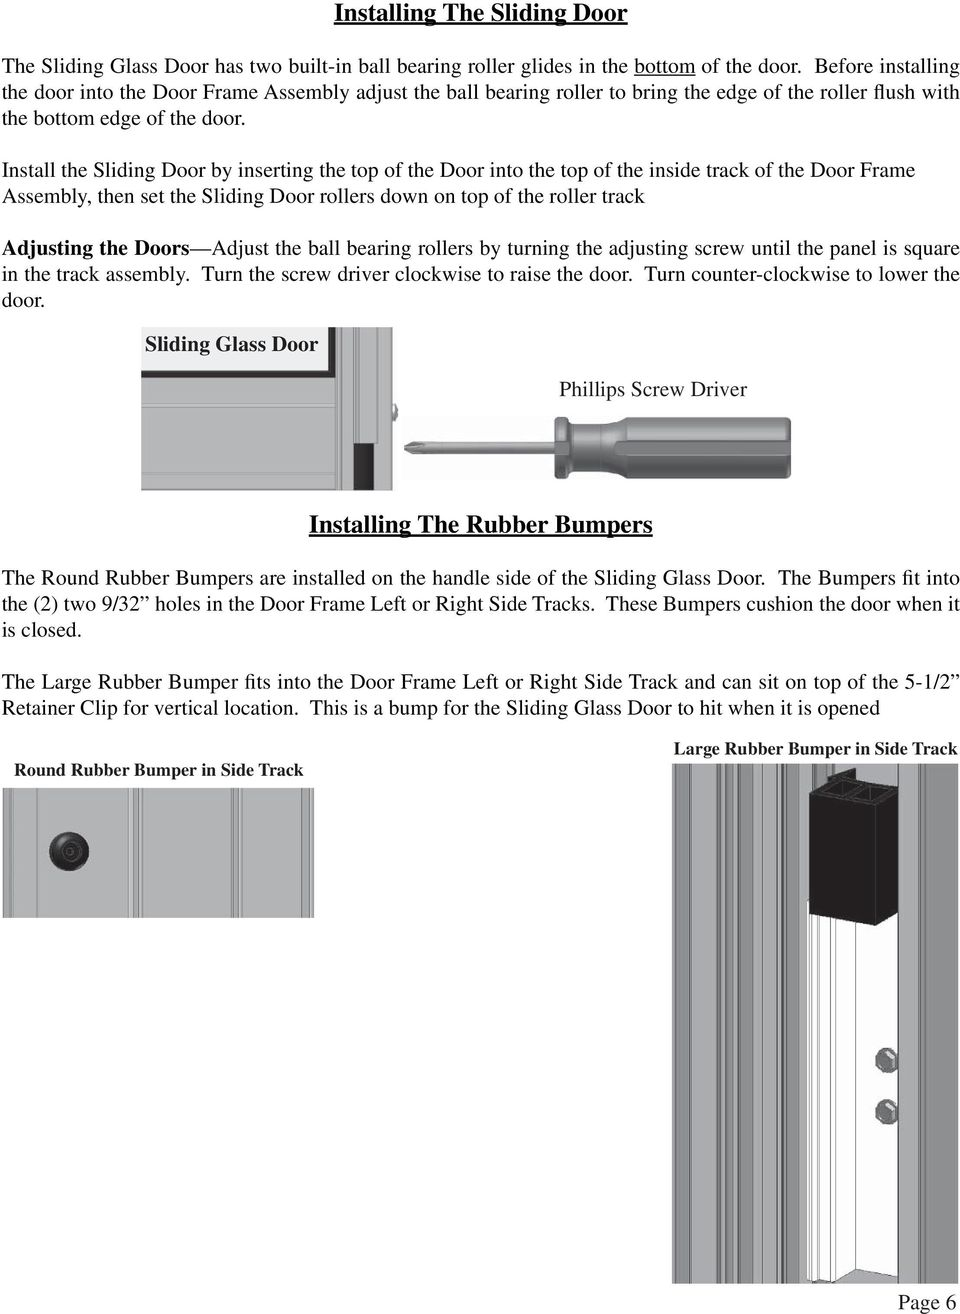 Install the Sliding Door by inserting the top of the Door into the top of the inside track of the Door Frame Assembly, then set the Sliding Door rollers down on top of the roller track Adjusting the